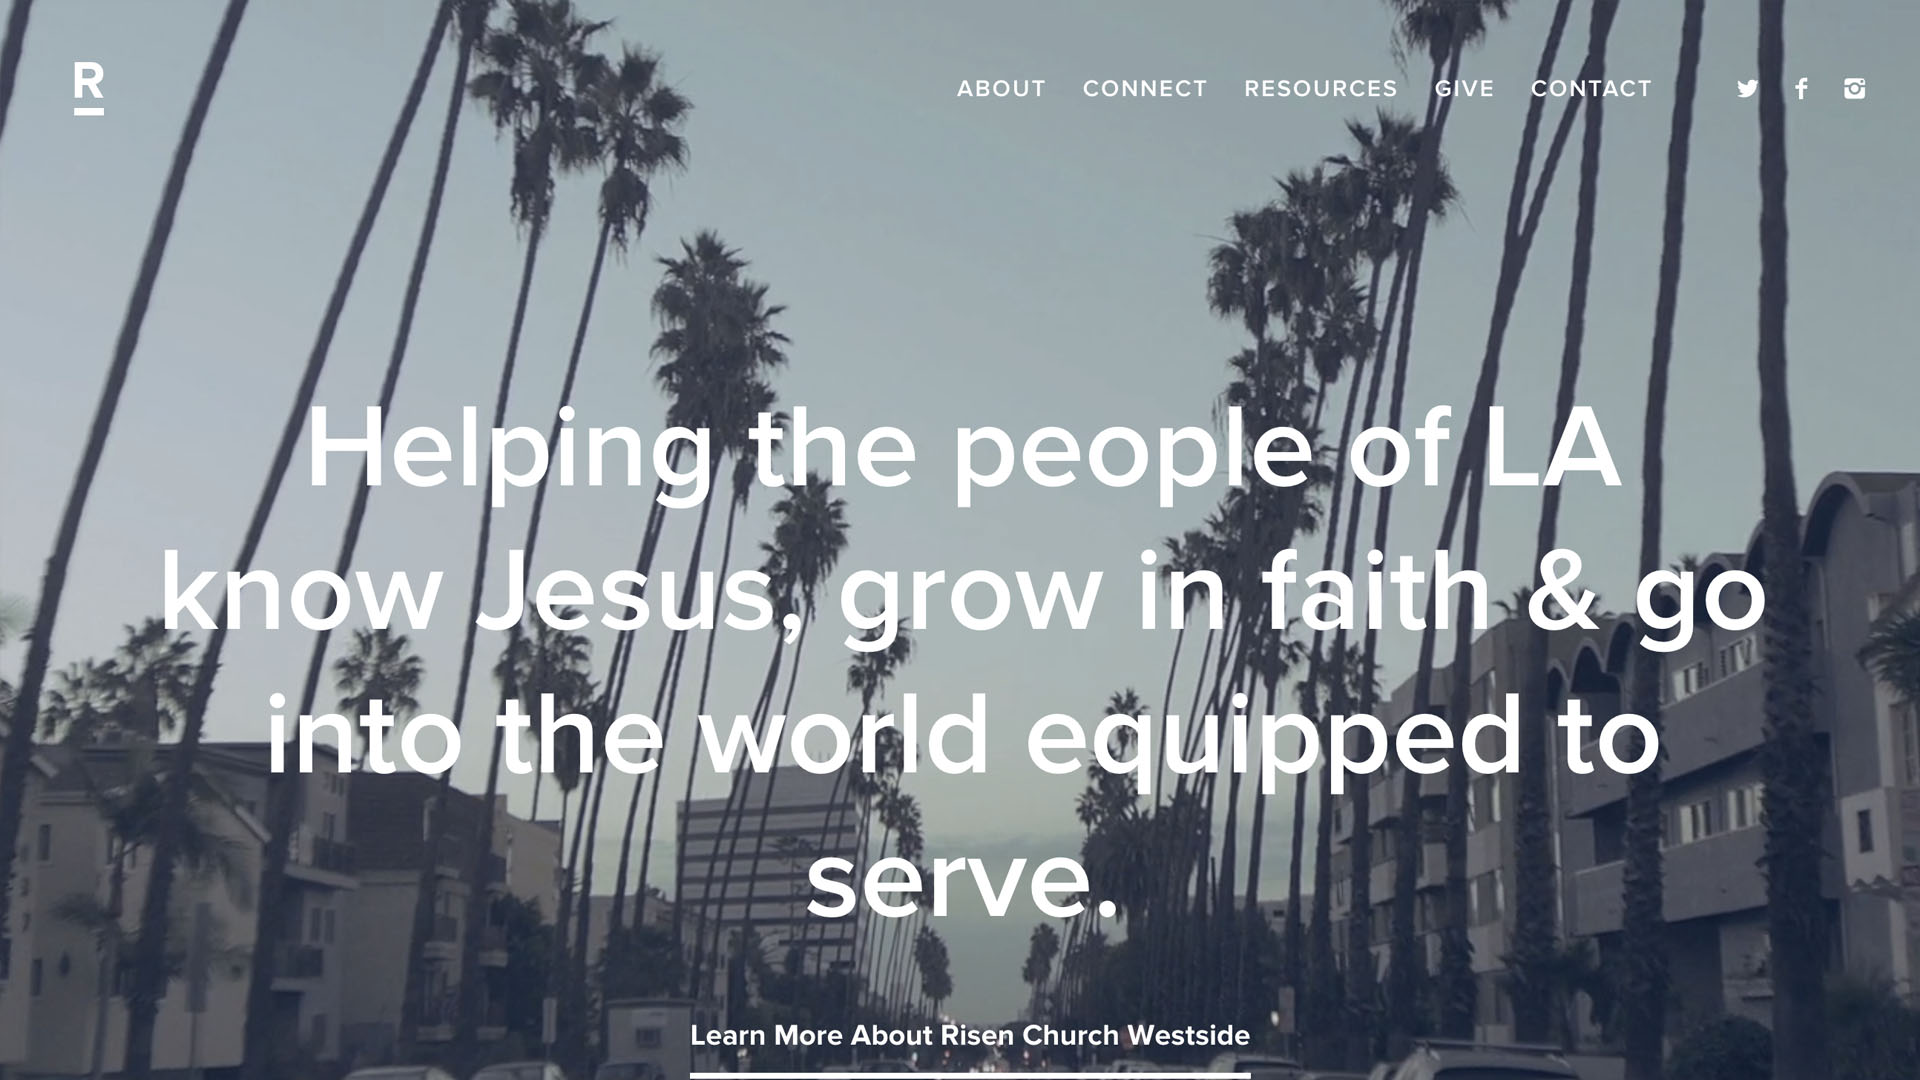 Risen Church - http://risenchurch.com/